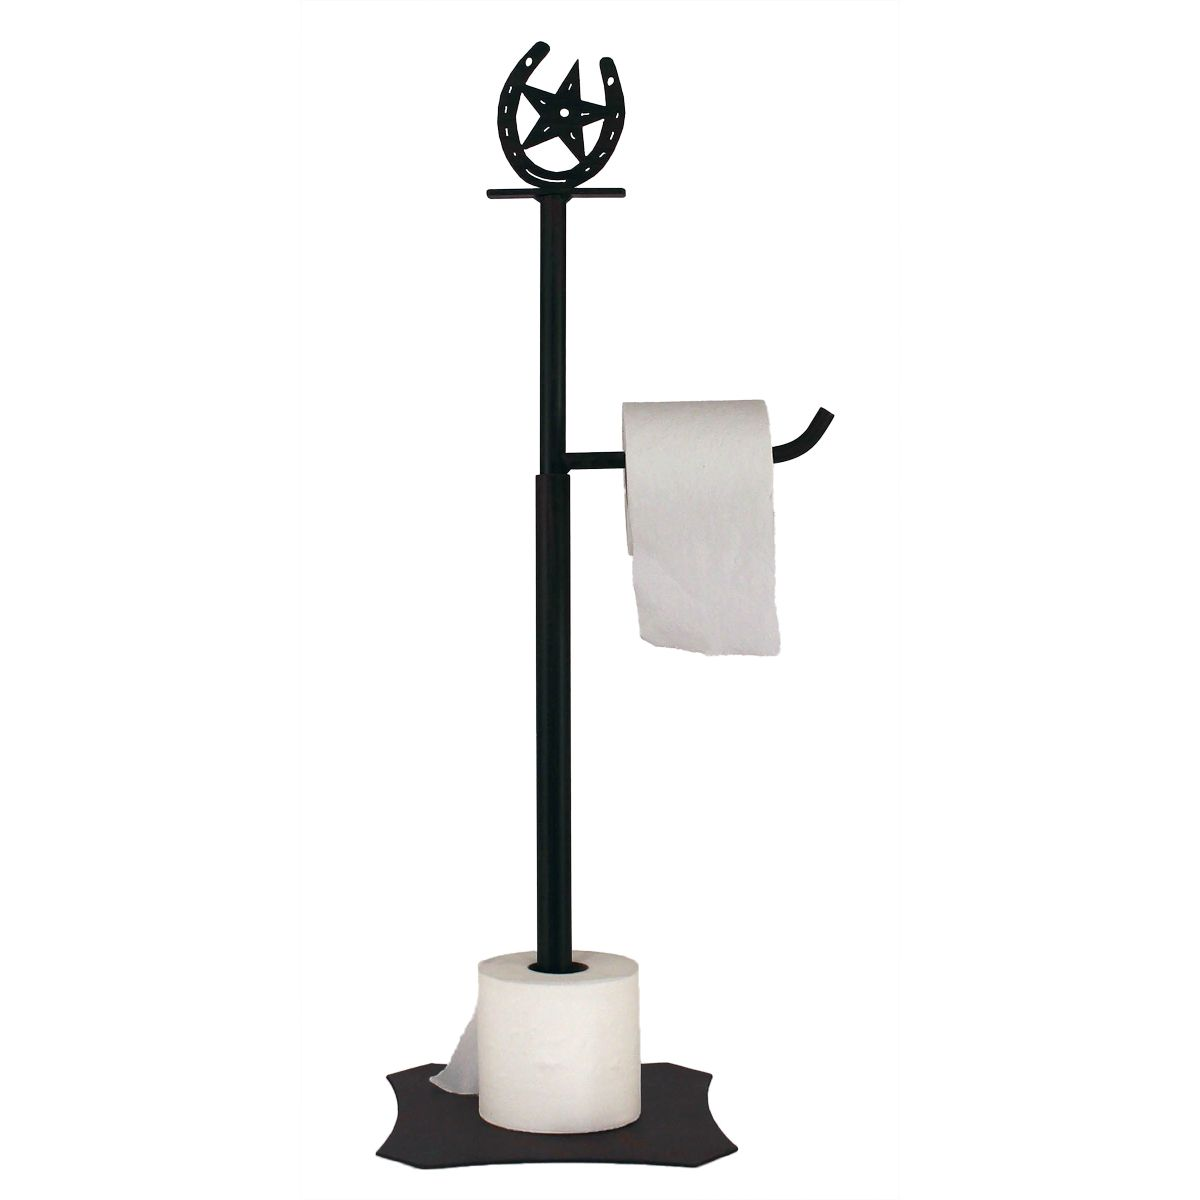 Iron Horseshoe and Star Toilet Paper Holder